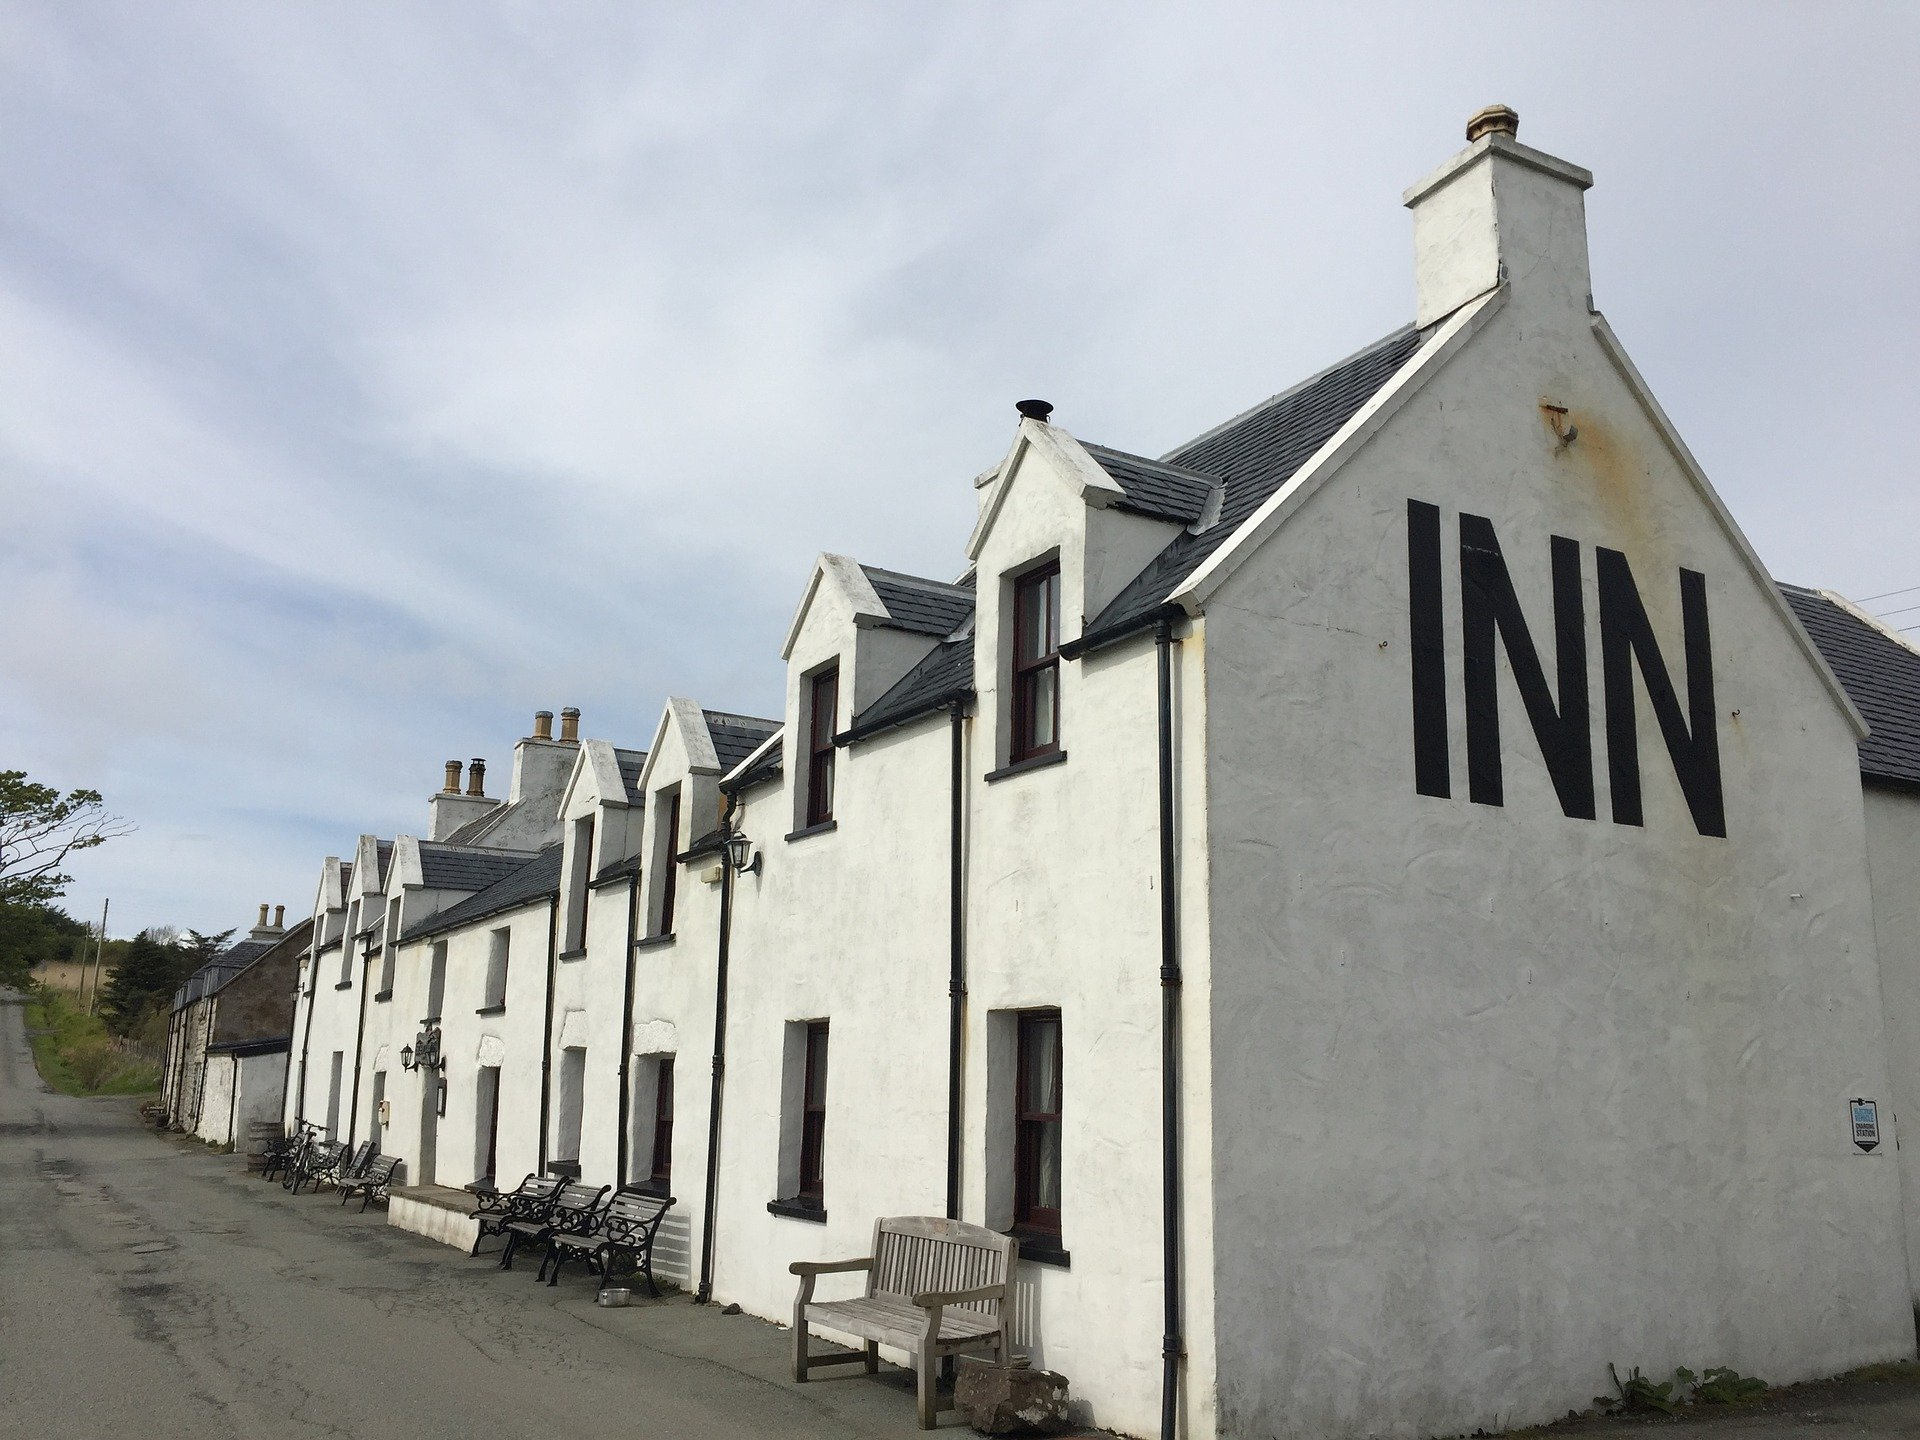 Inn on Isle of Skye